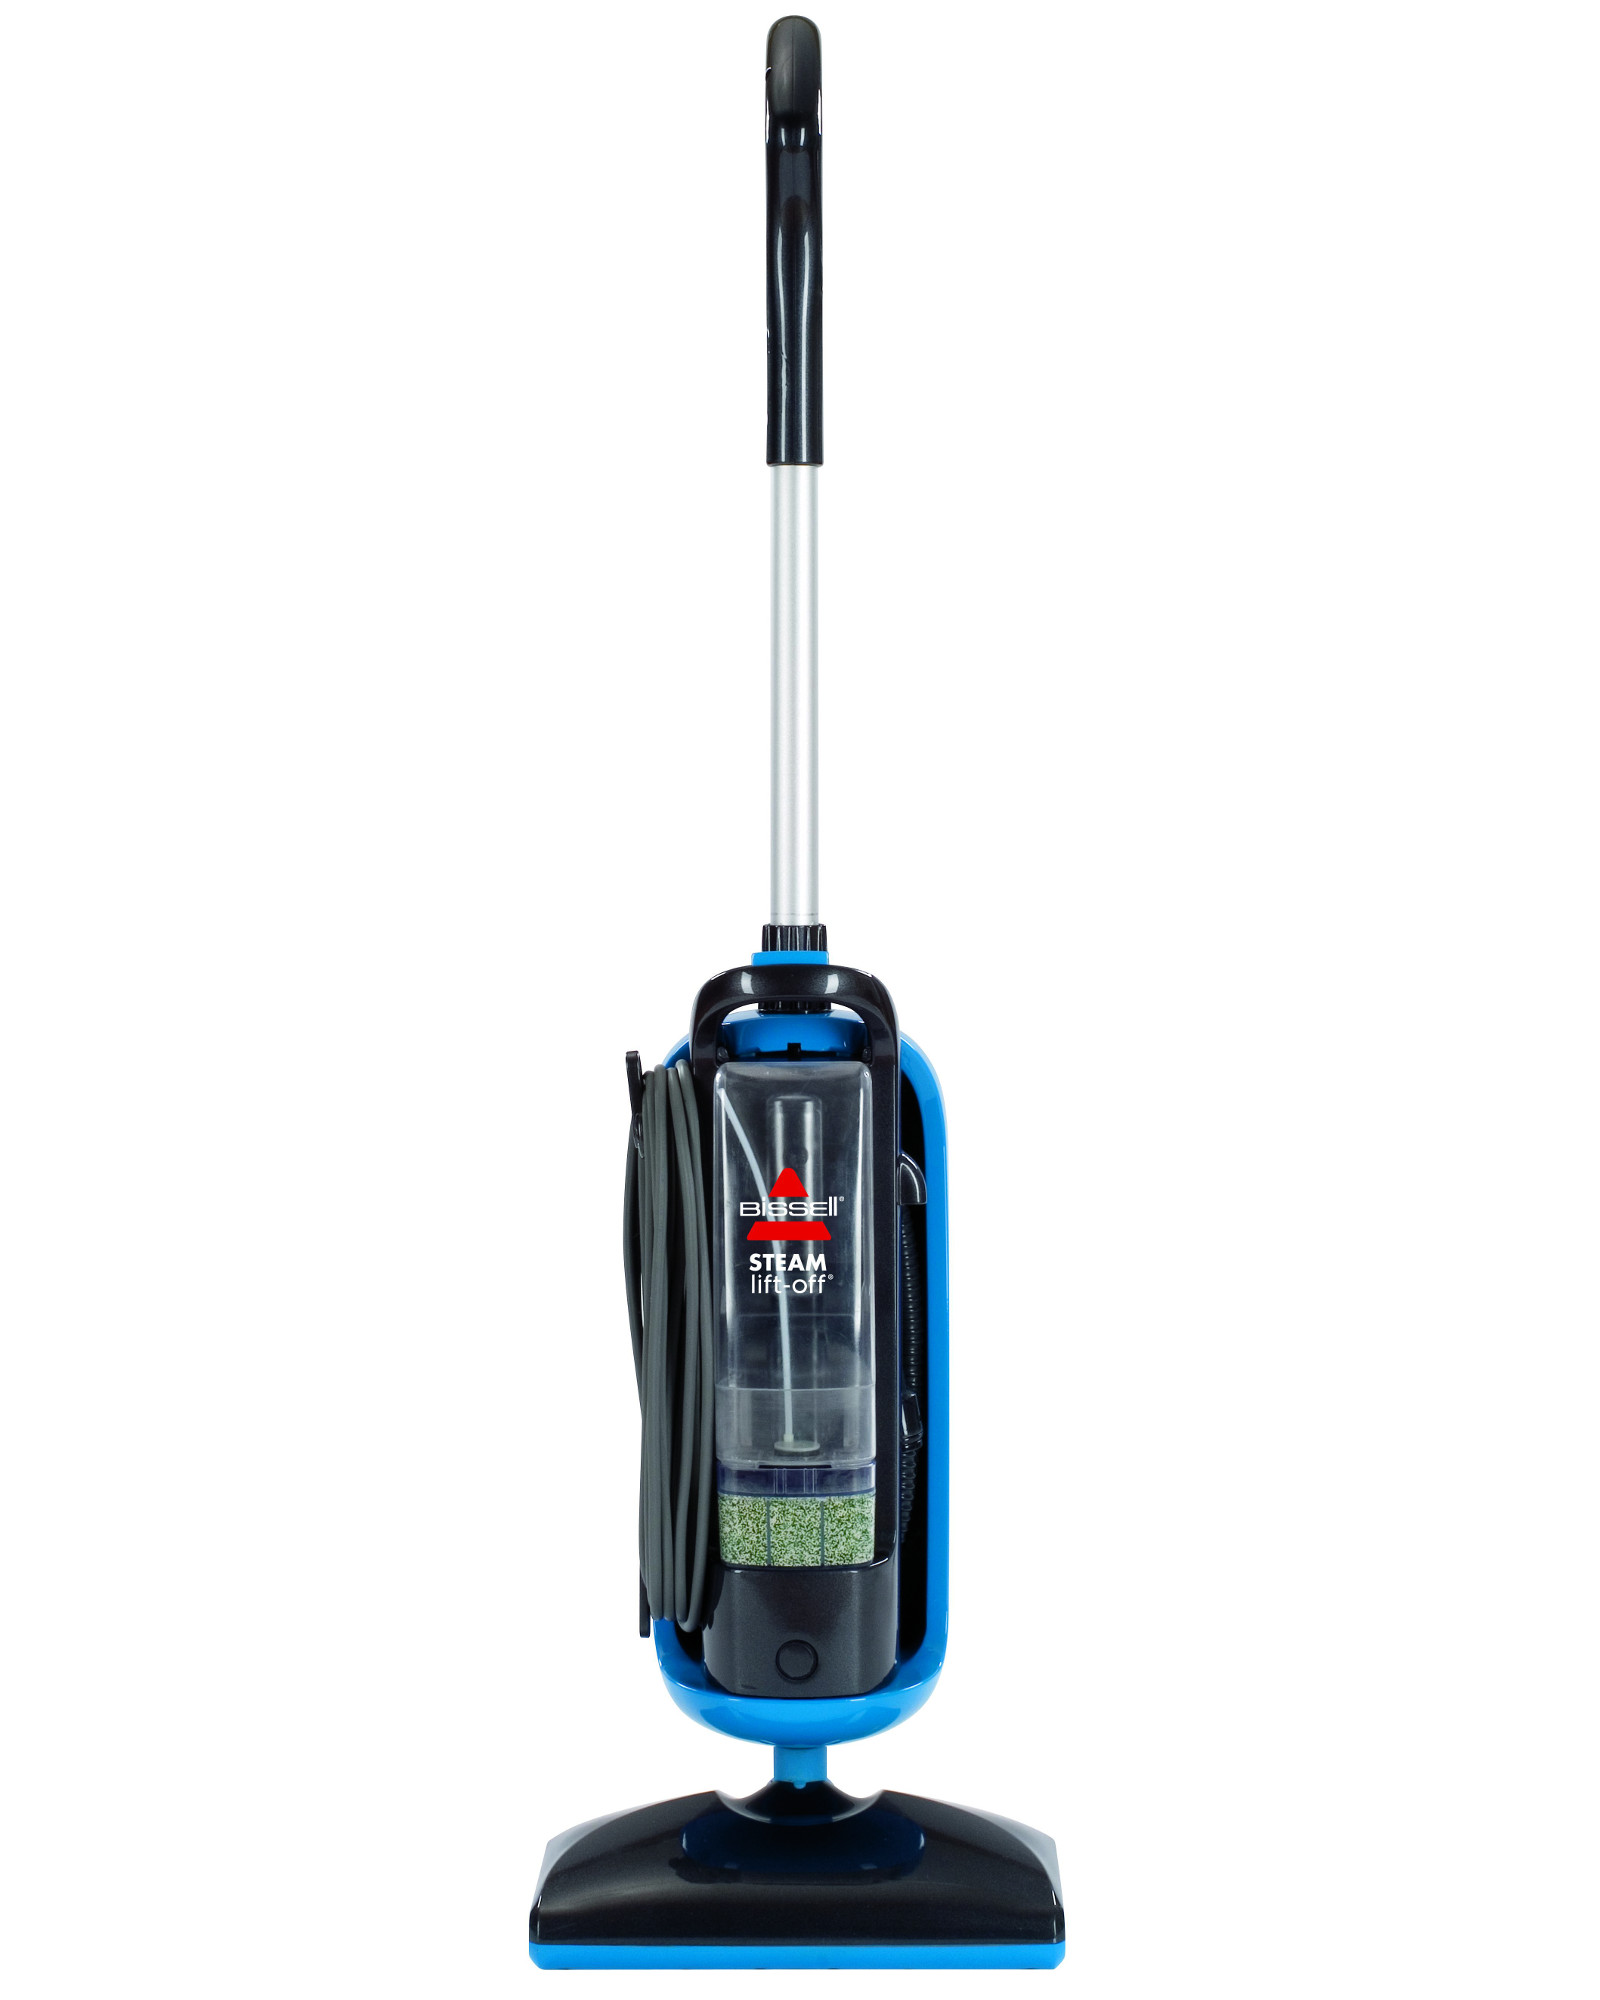 Bissell 39w7 Lift Offr Steam Moptm Hard Surface Cleaner